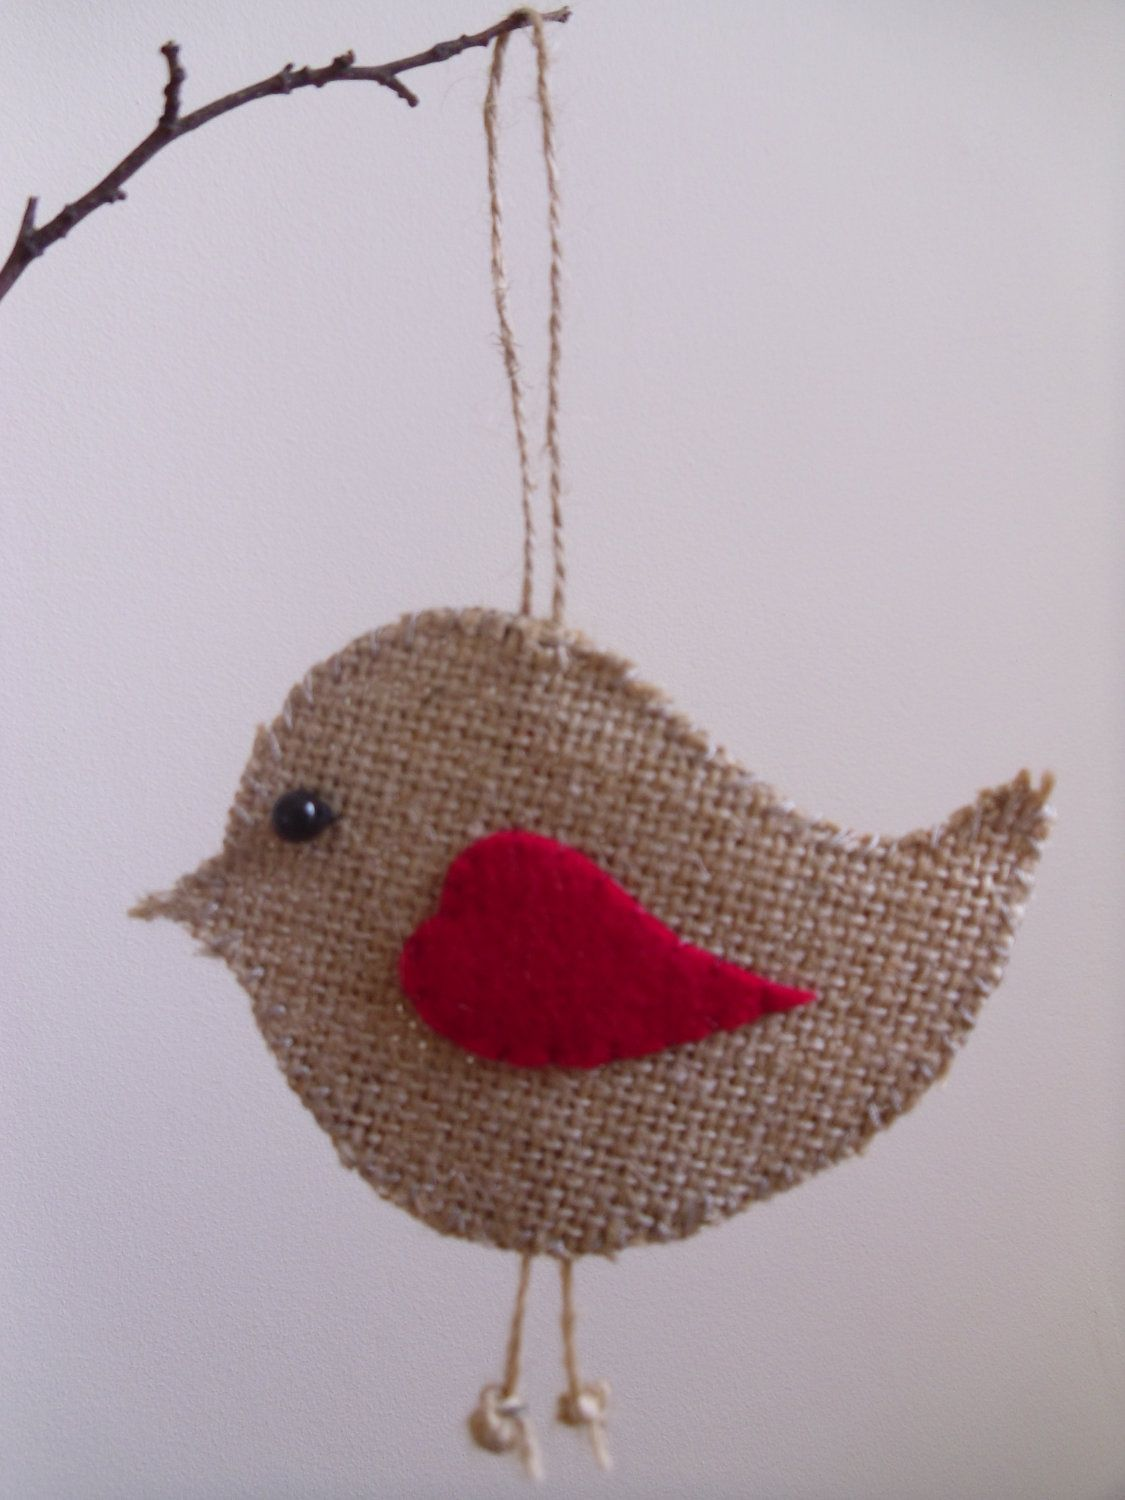 Burlap bird ornaments - Another Burlap Bird Craft